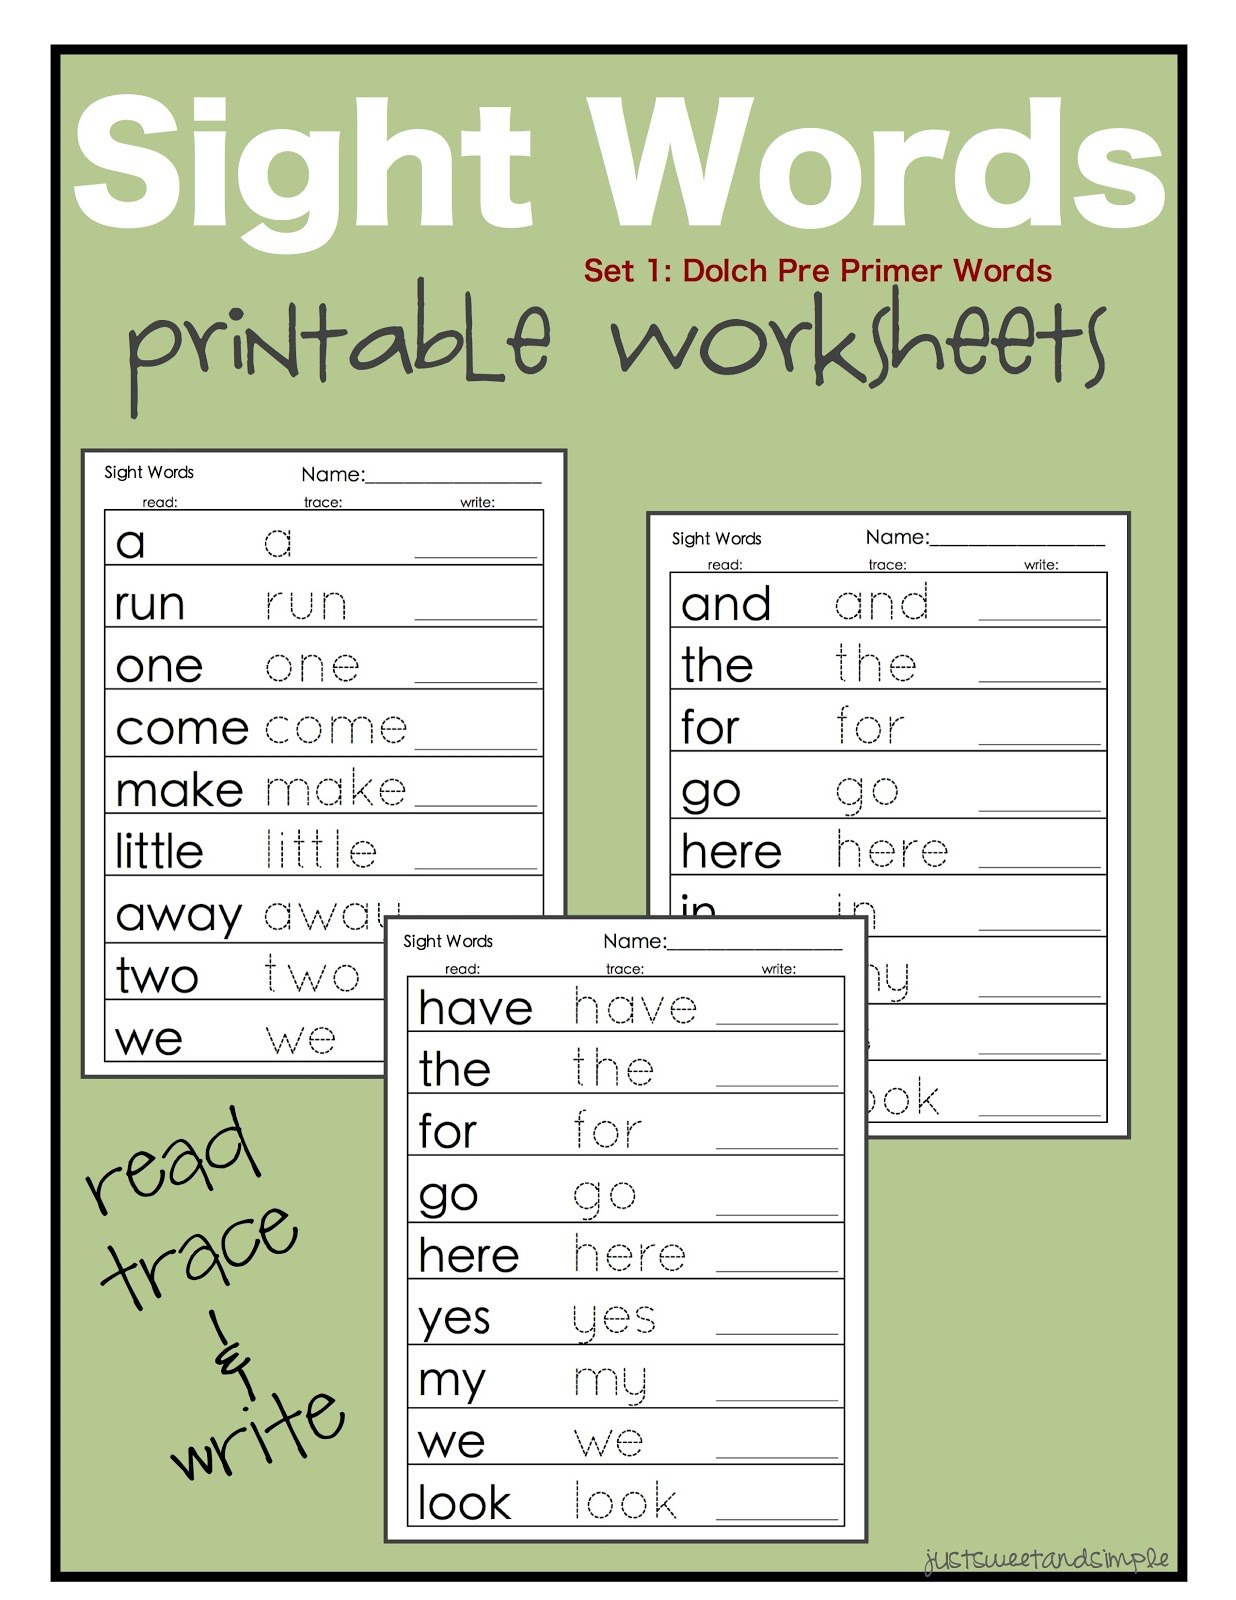 Worksheet Preschool Site Words just sweet and simple preschool practice printable dolch site since the sight word lists includes many words he can sound out i first want him practicing those that cant because to